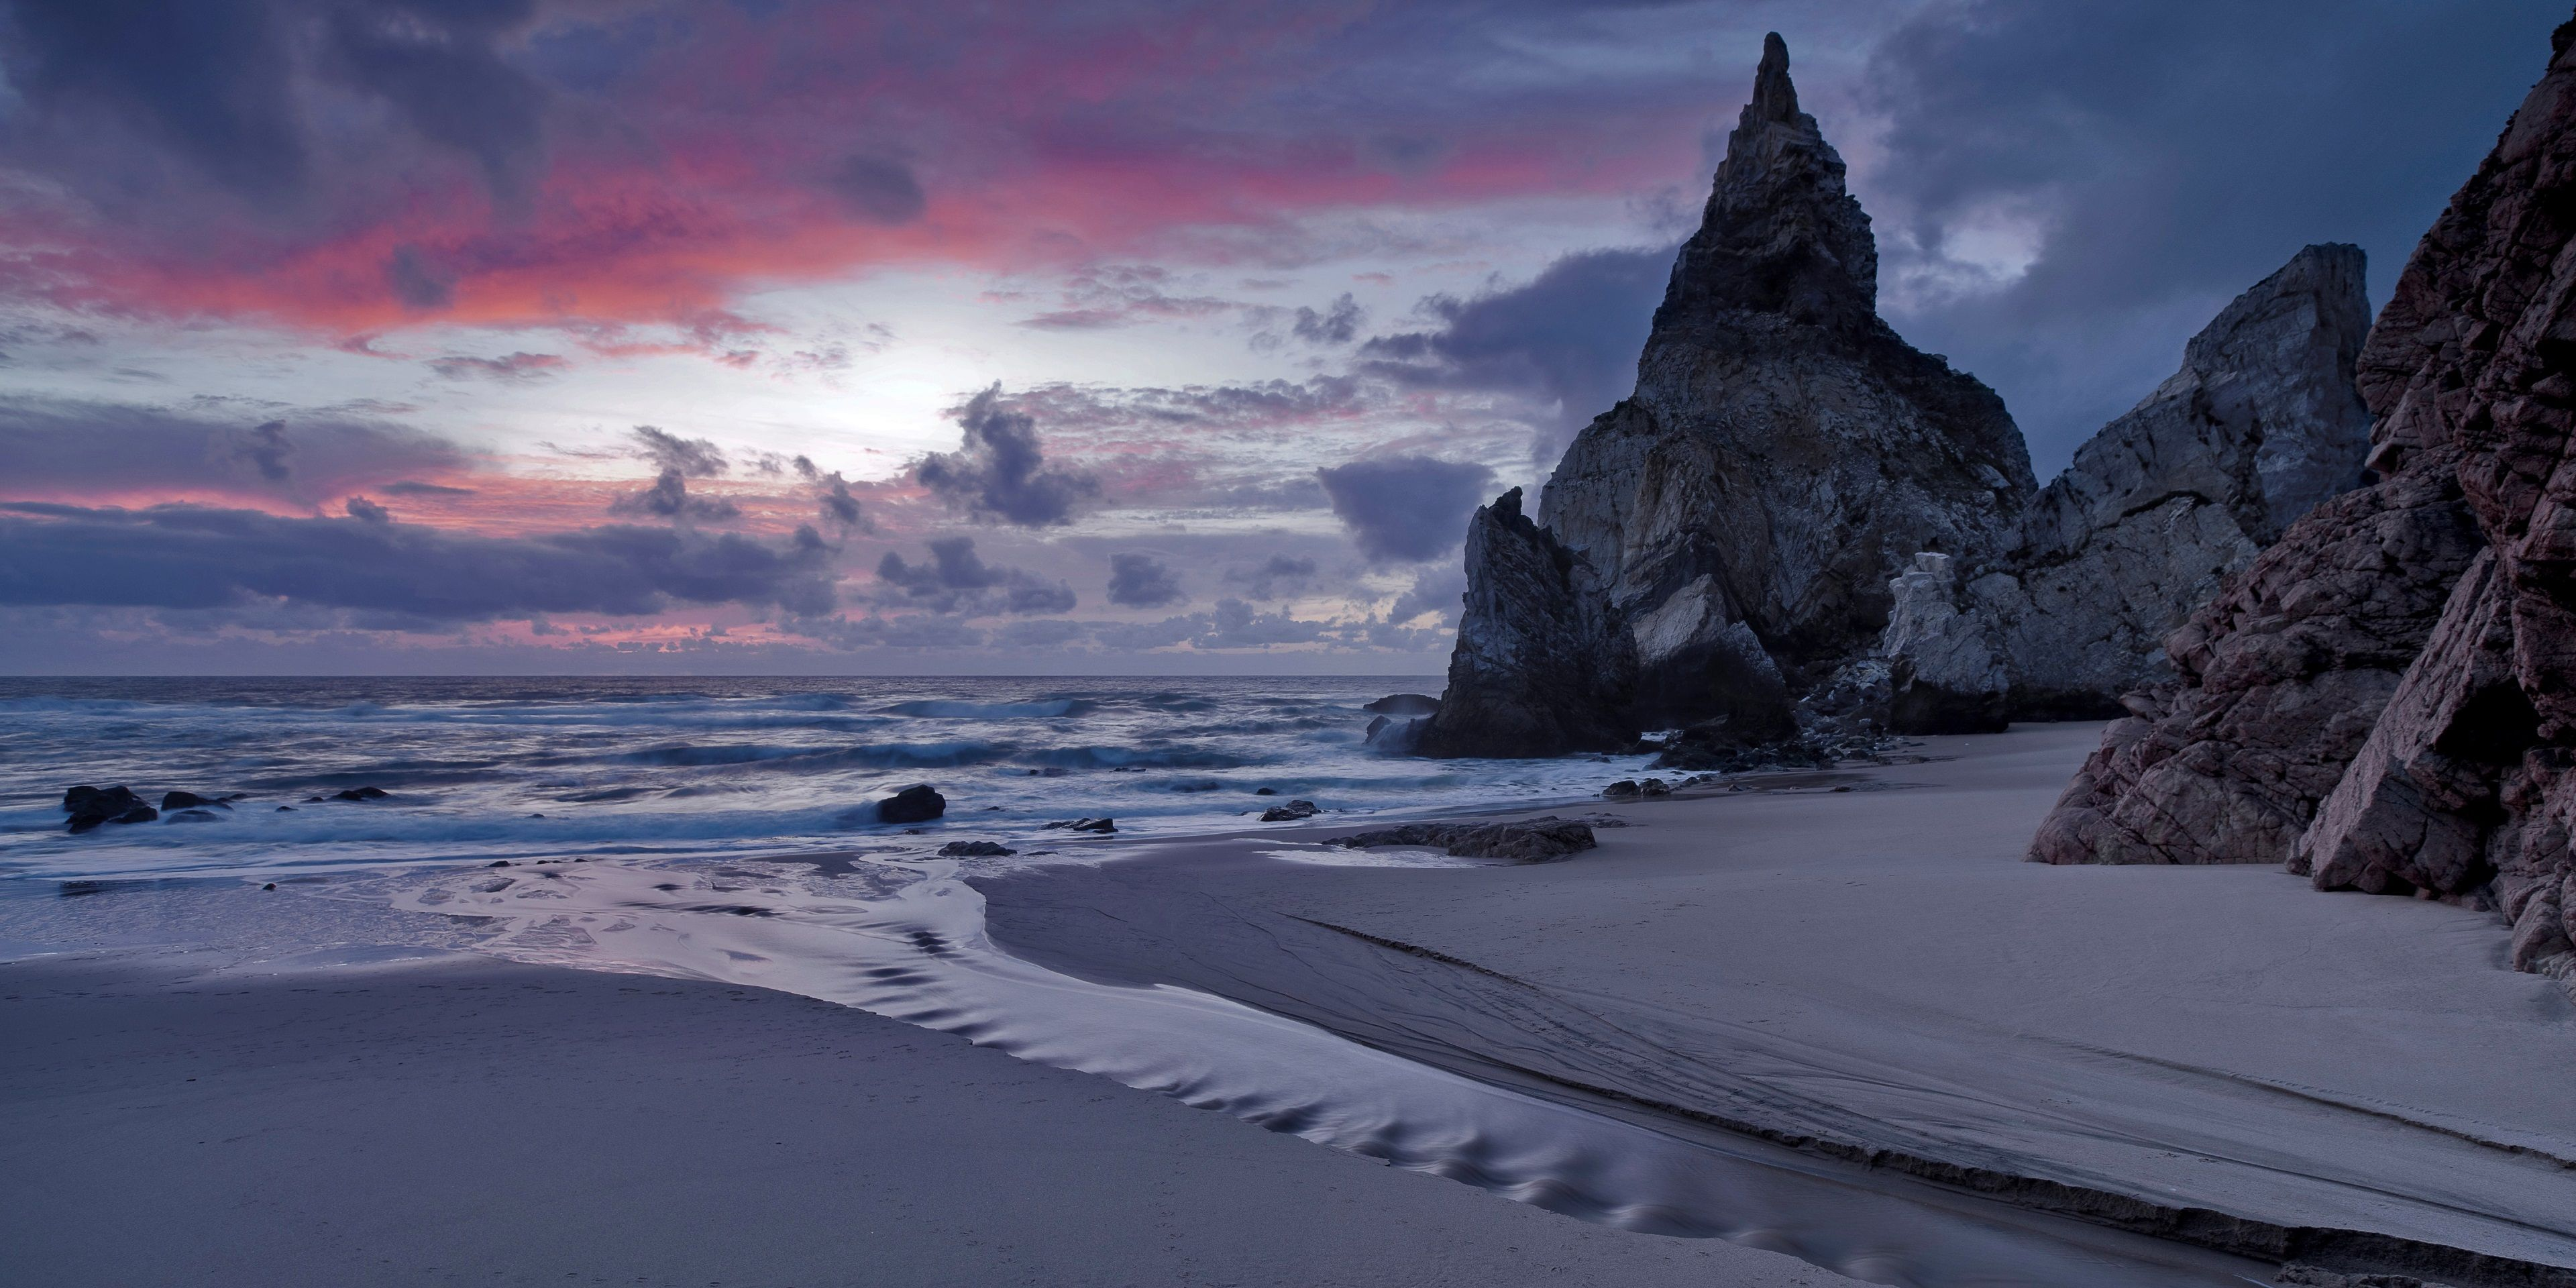 3840x1920 3840x1920 beach 4k new wallpaper hd | wallpapers and backgronds ...